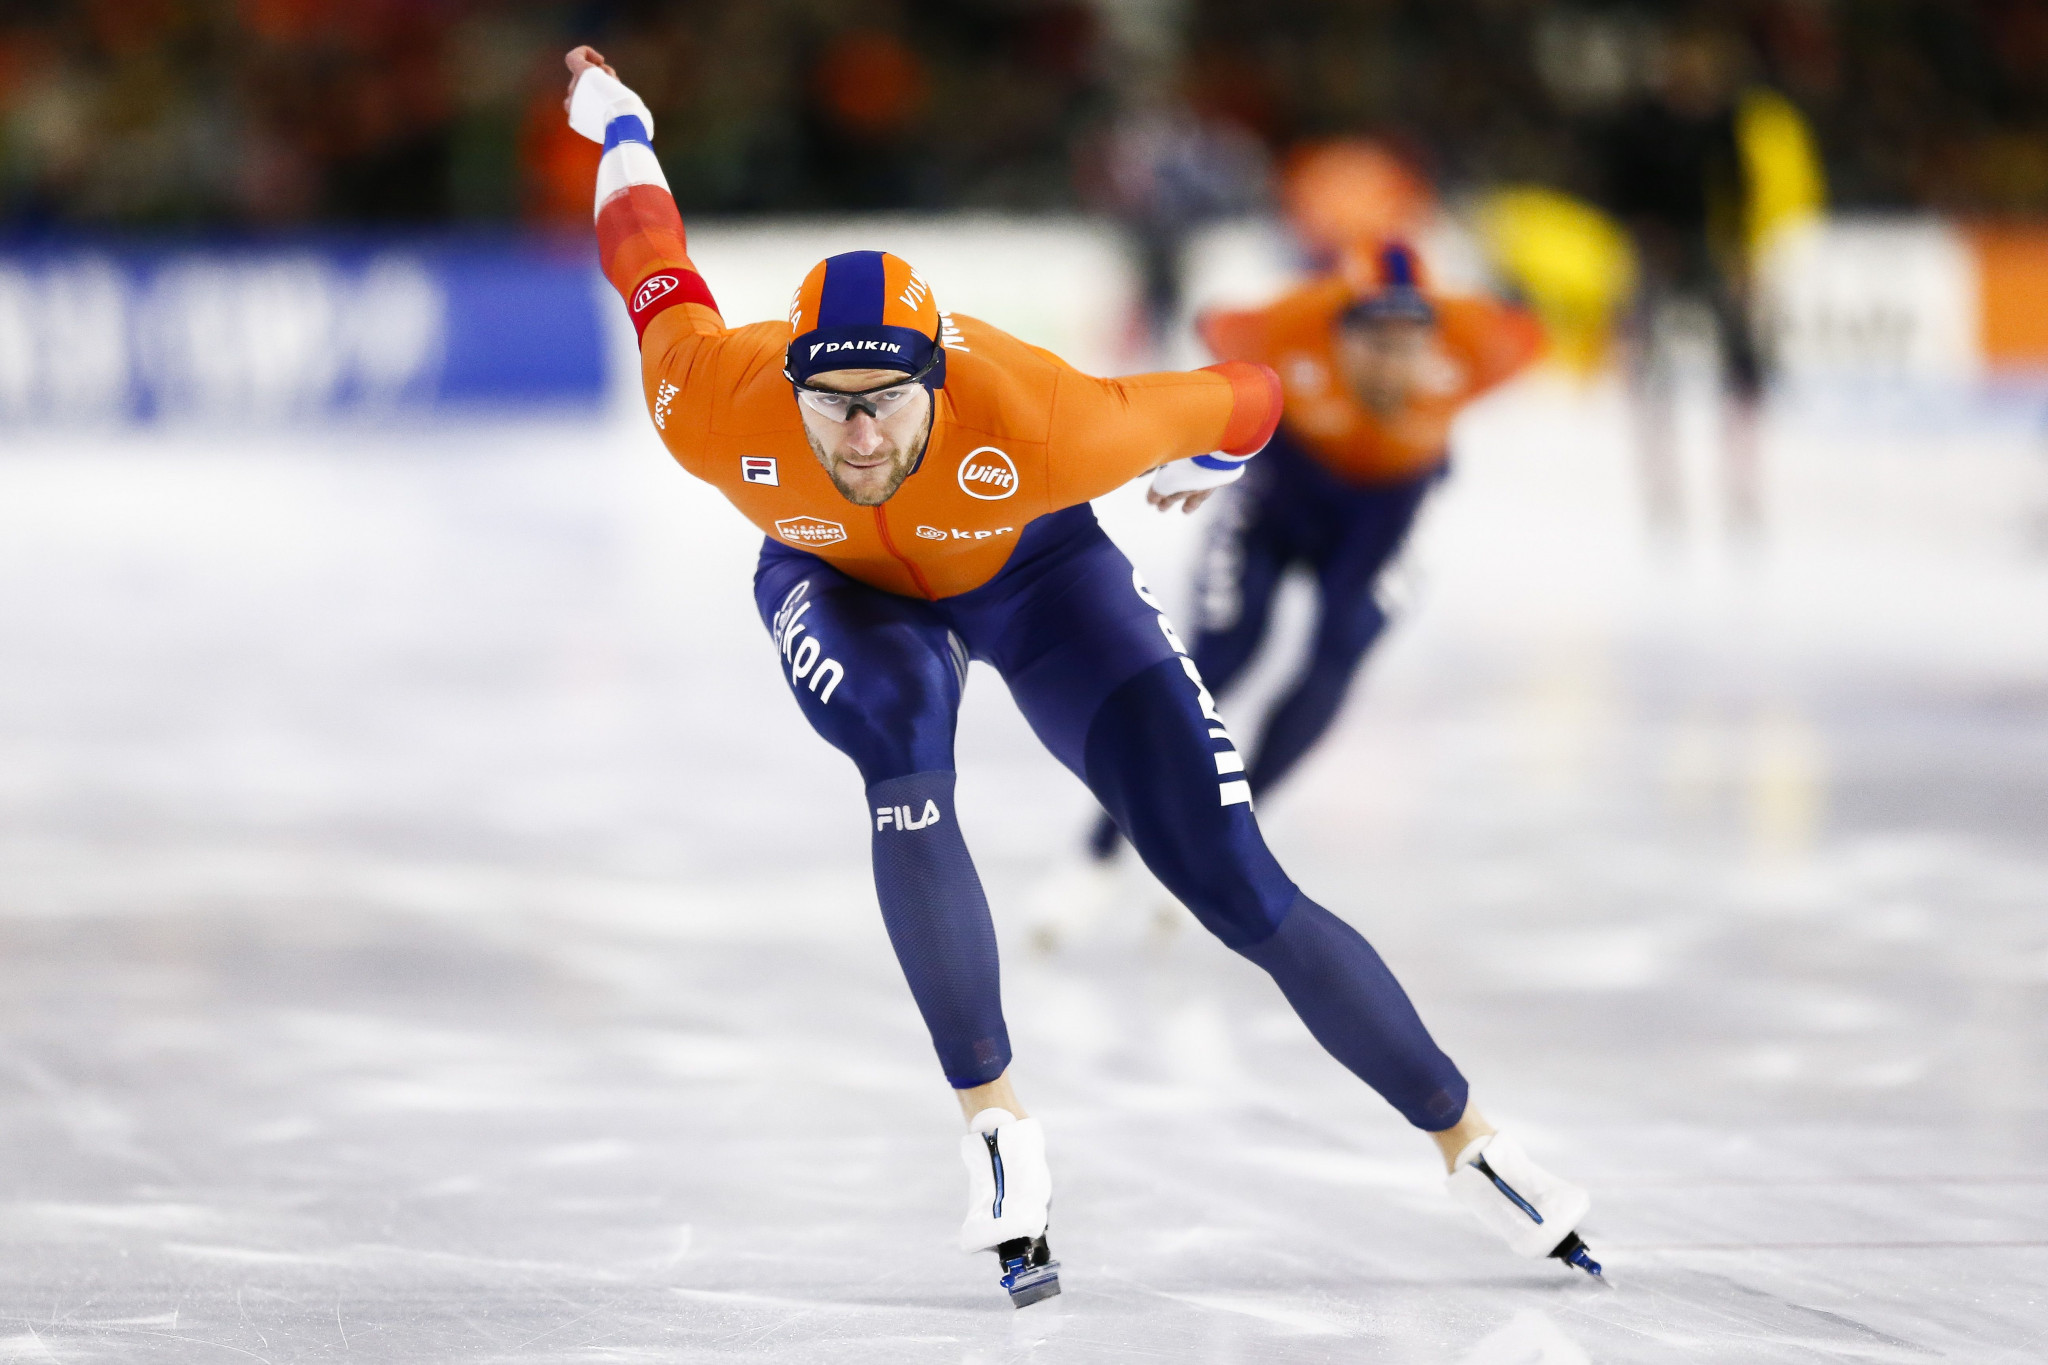 The ISU has established a deadline for deciding whether events can take place ©Getty Images